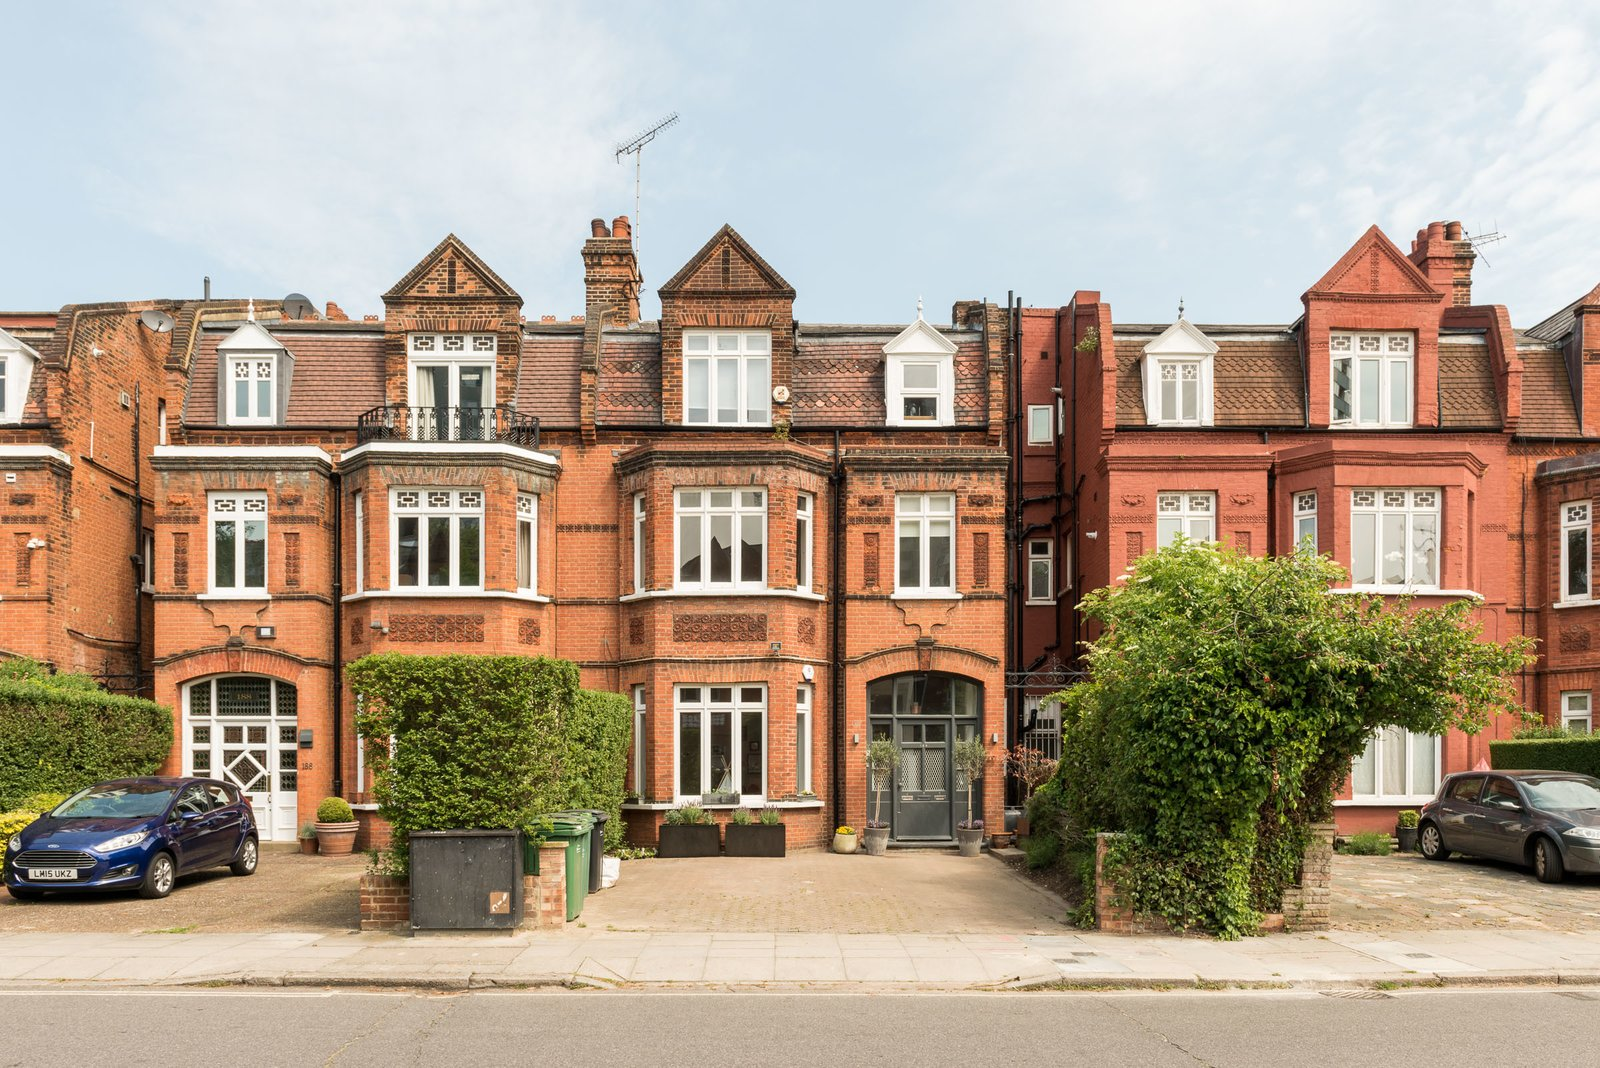 Exterior, Brick Siding Material, Shingles Roof Material, Gable RoofLine, and Apartment Building Type The traditional facade does little to hint at the apartment's modern aesthetic.  Photo 1 of 11 in A Swoon-Worthy London Apartment Is Listed For £1.8M